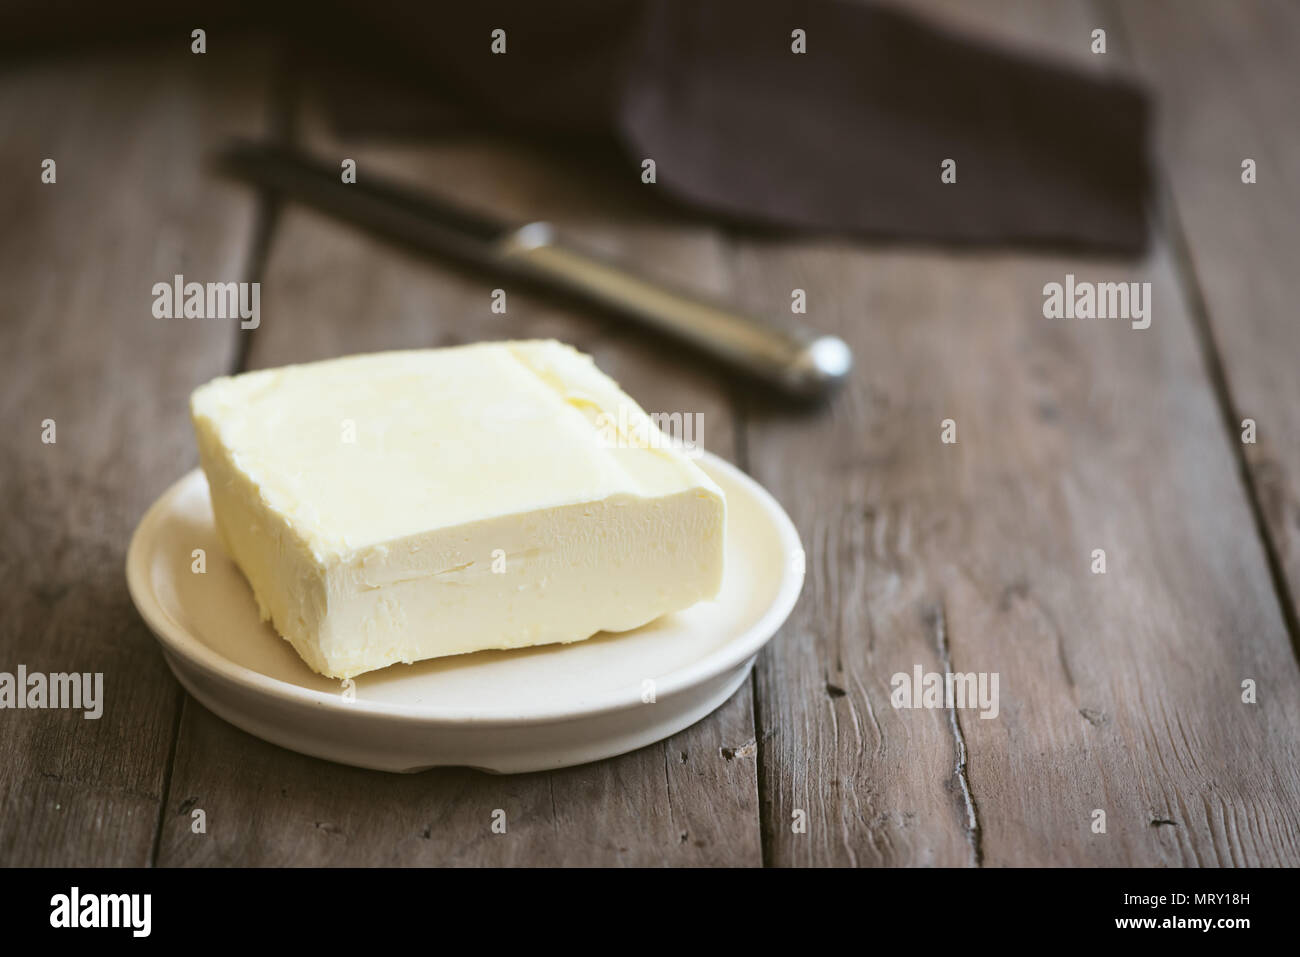 Butter on dark wooden background, copy space. Farm dairy product - butter. - Stock Image